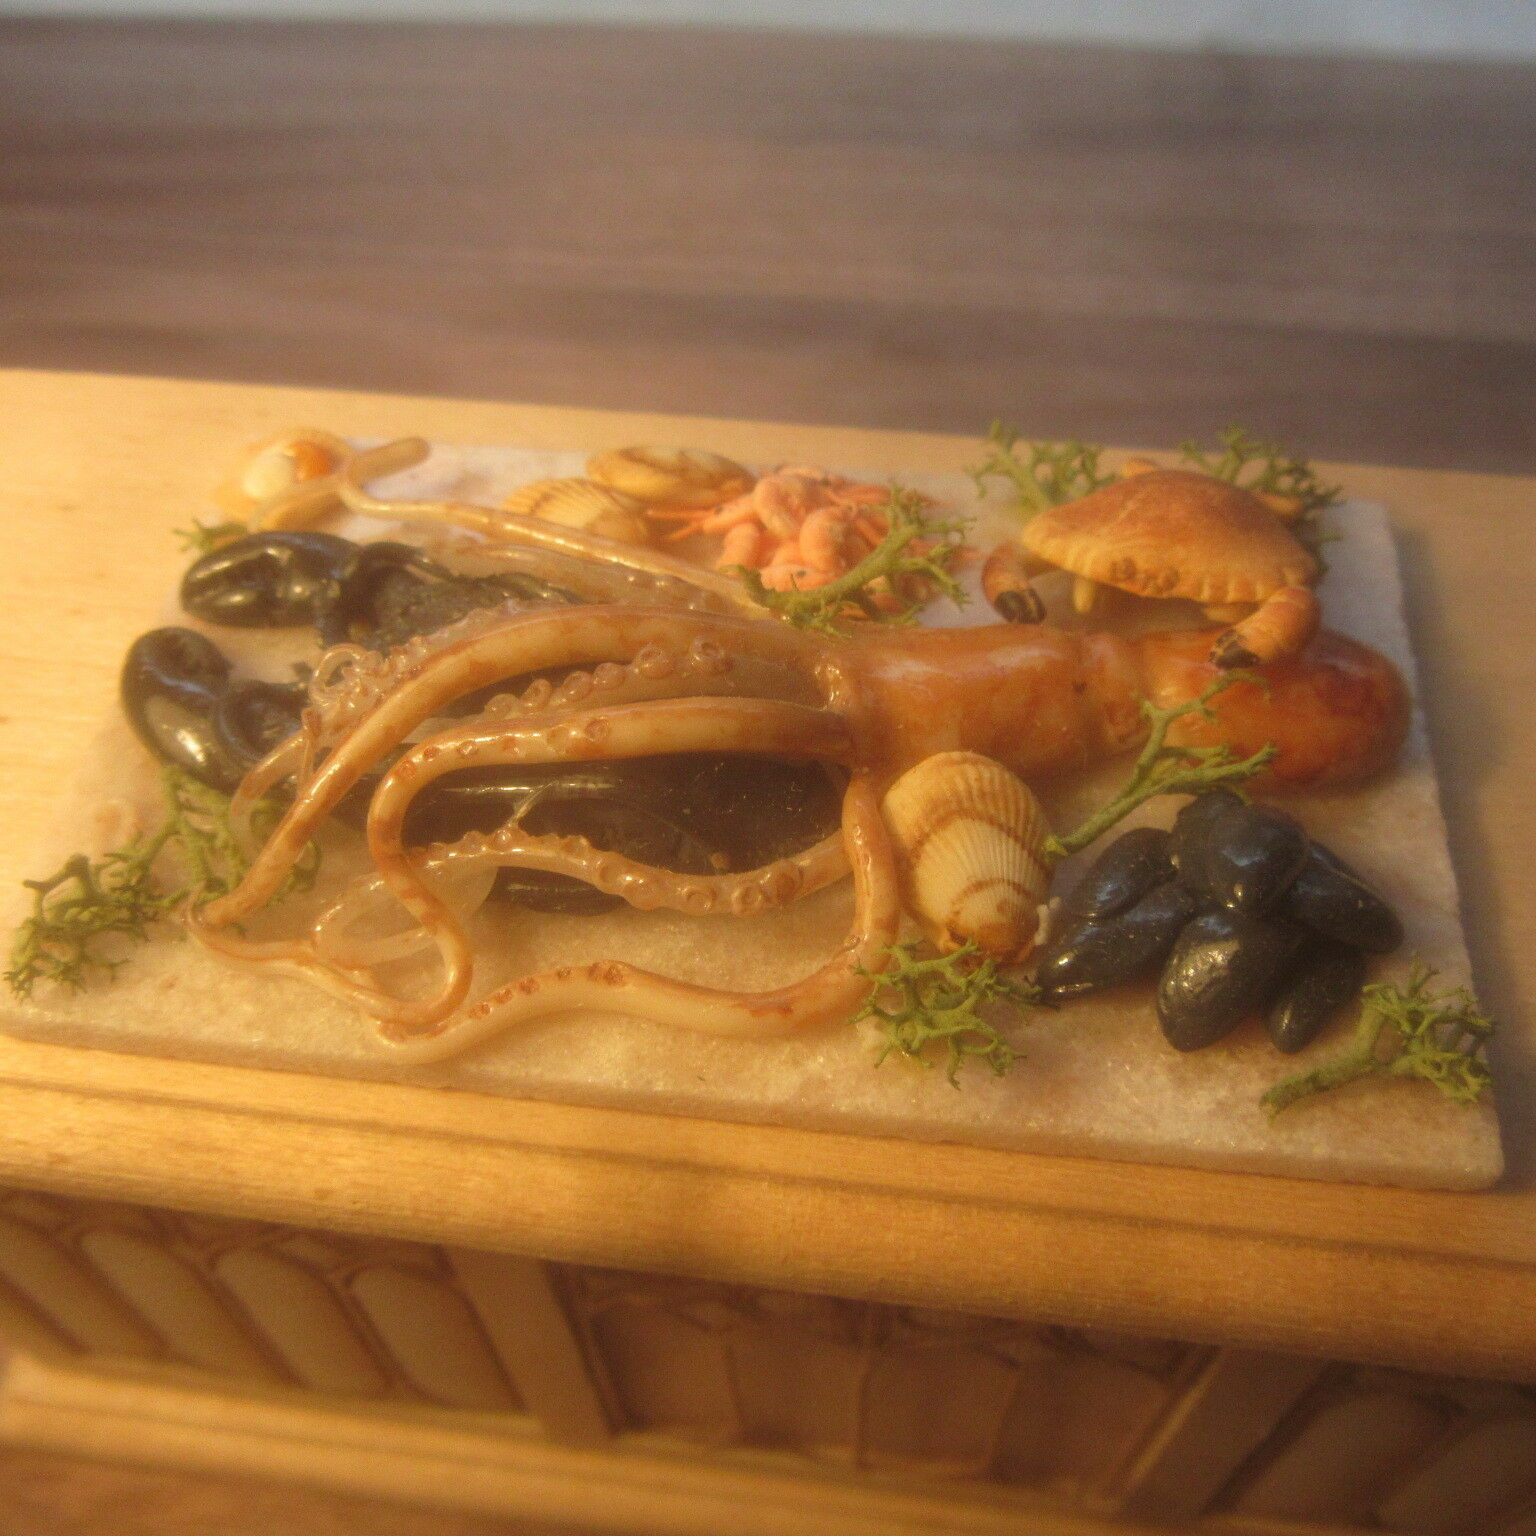 1 12 scale Dolls House   Display of Fish on a Slab    British made    DHD1818